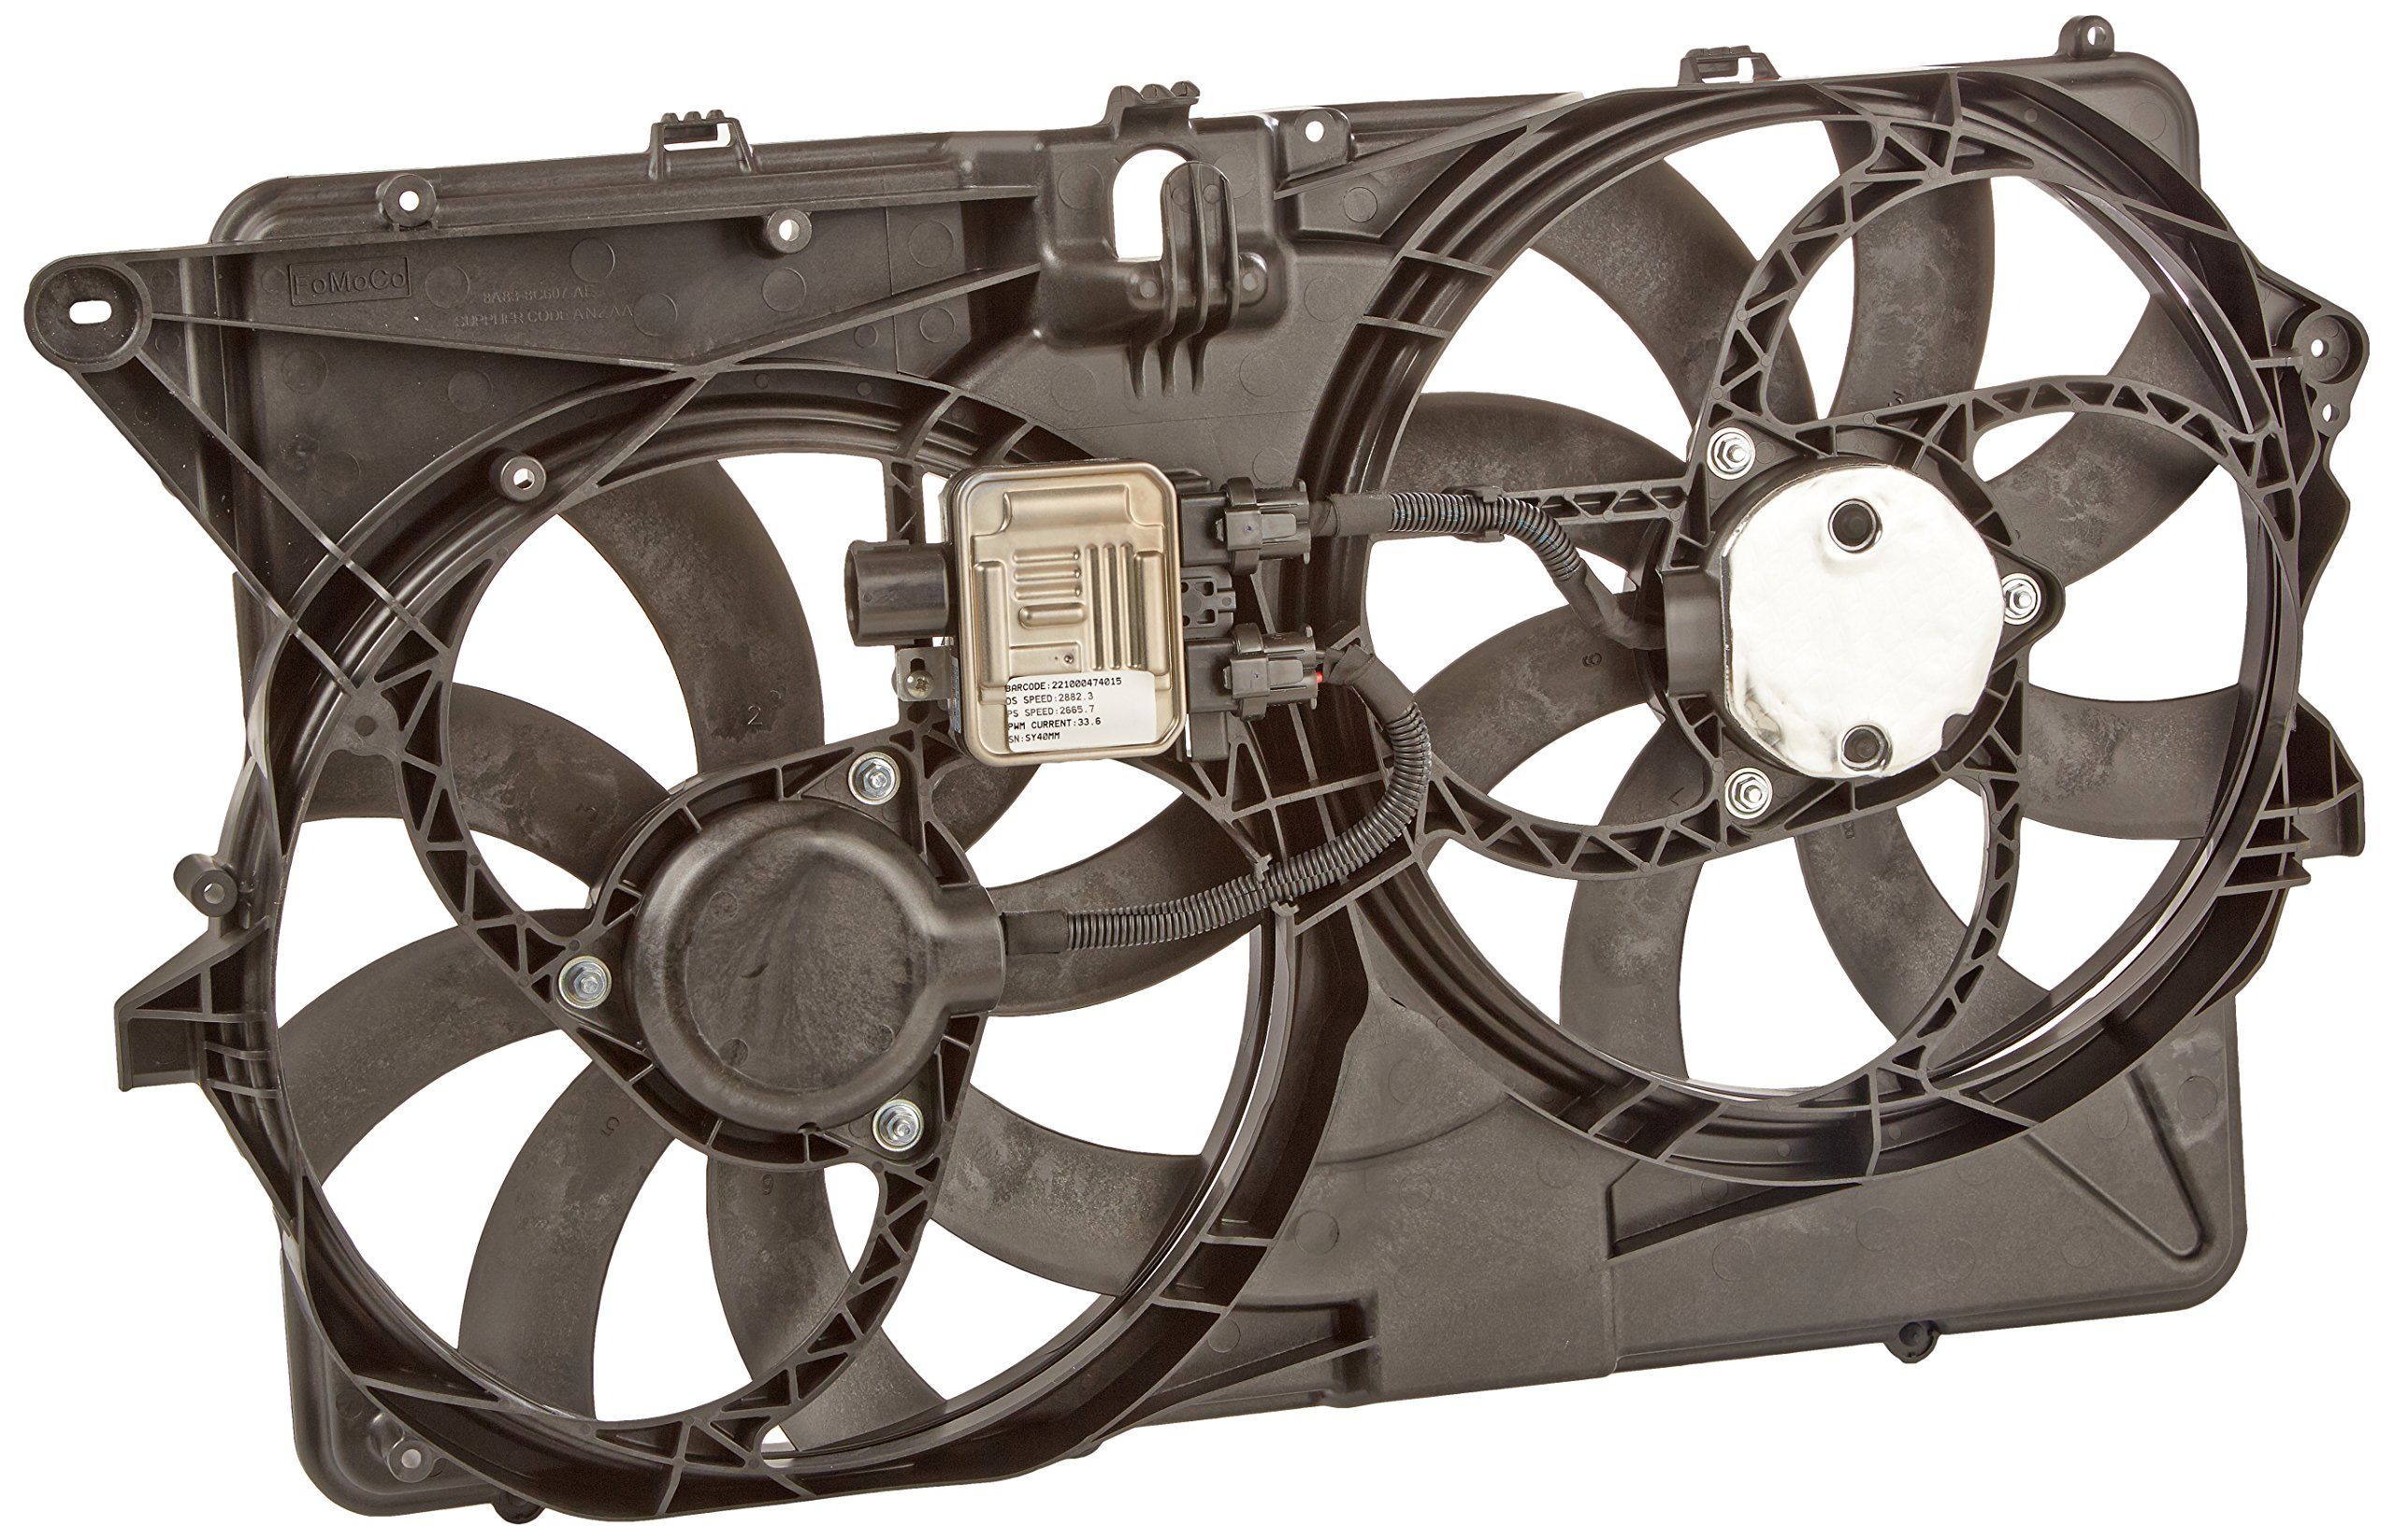 Motorcraft Rf241 Radiator Fan Motor Read More Reviews Of The Product By Visiting The Link On The Image This Is An Affili Radiator Fan Motorcraft Fan Motor